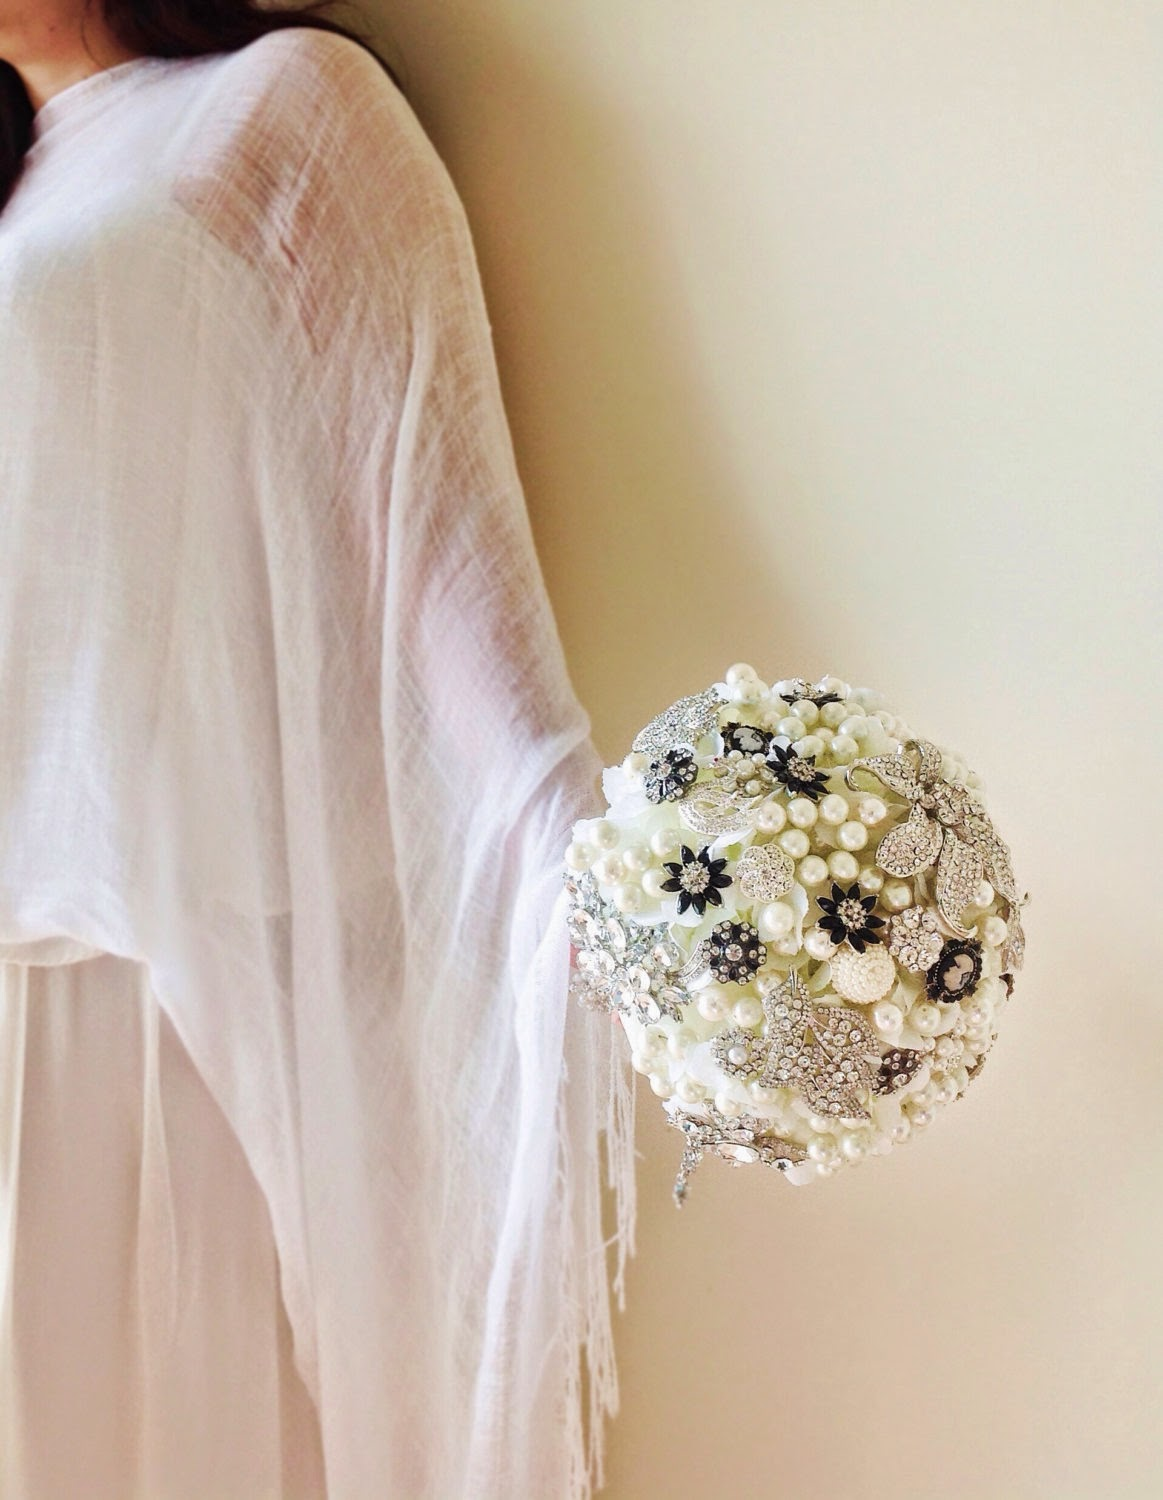 Brooch and pearl bouquet